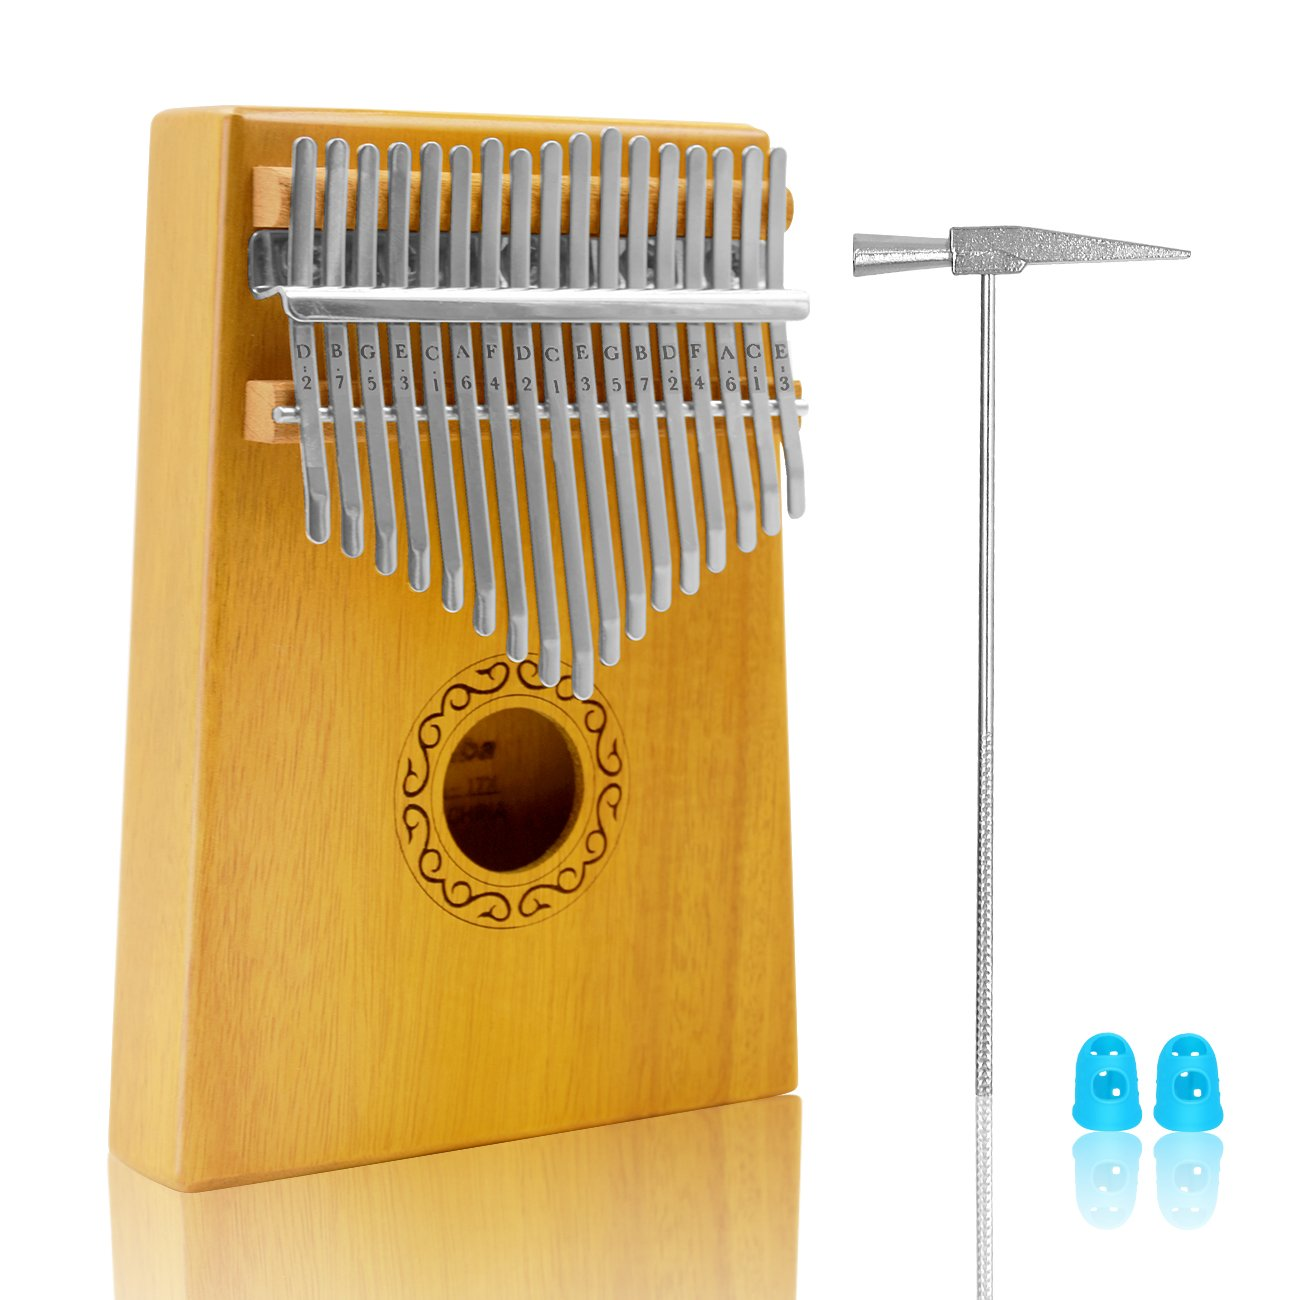 17 Keys Kalimba Thumb Piano,Finger Piano Musical Toys with Tune-Hammer and Study Instruction for Music Lovers and Kids